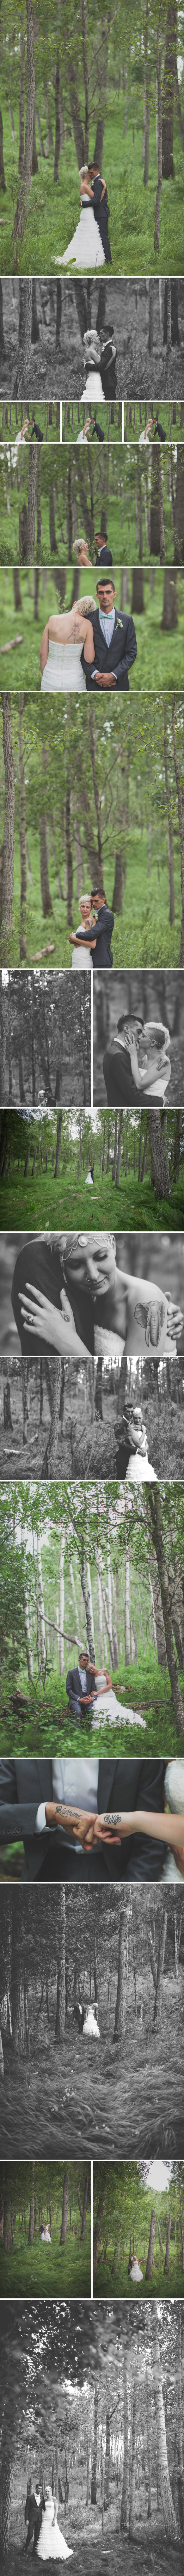 antique grounds wedding | ©The Paper Deer Photography | thepaperdeer.ca